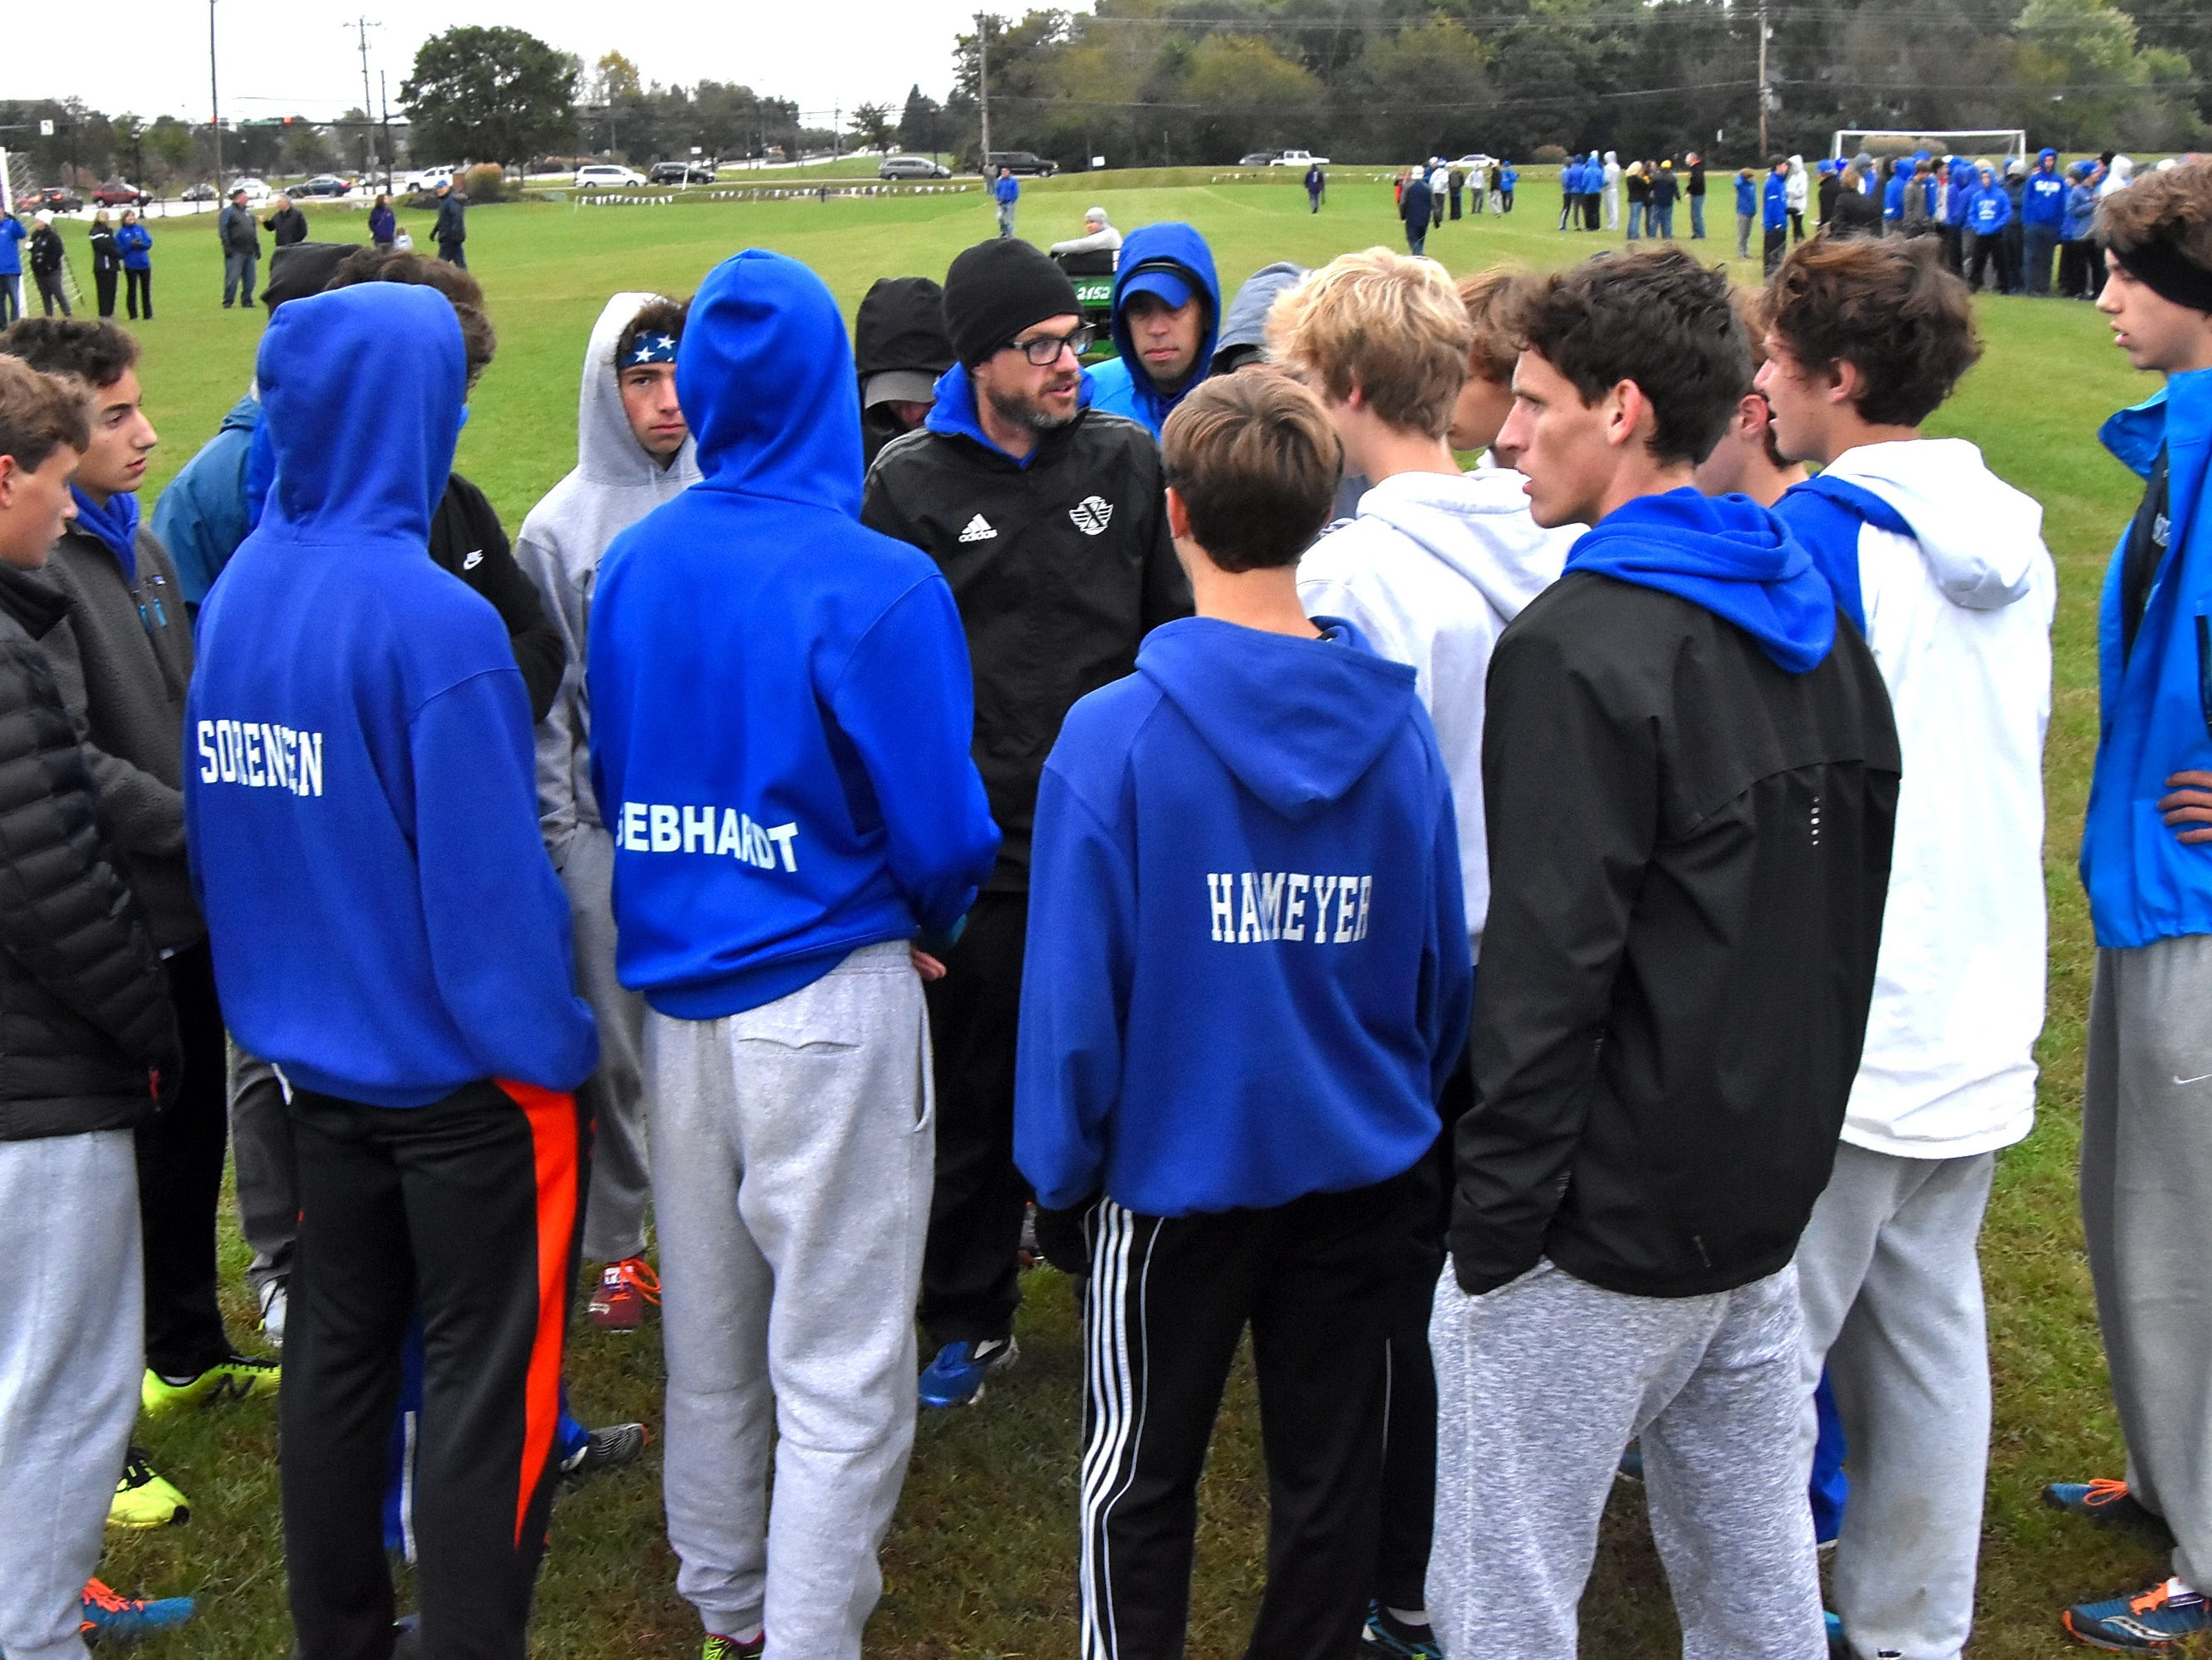 St. Xavier runners get a final team talk before running at the 2018 GCL/GGCL Cross Country Championships, October 13, 2018.